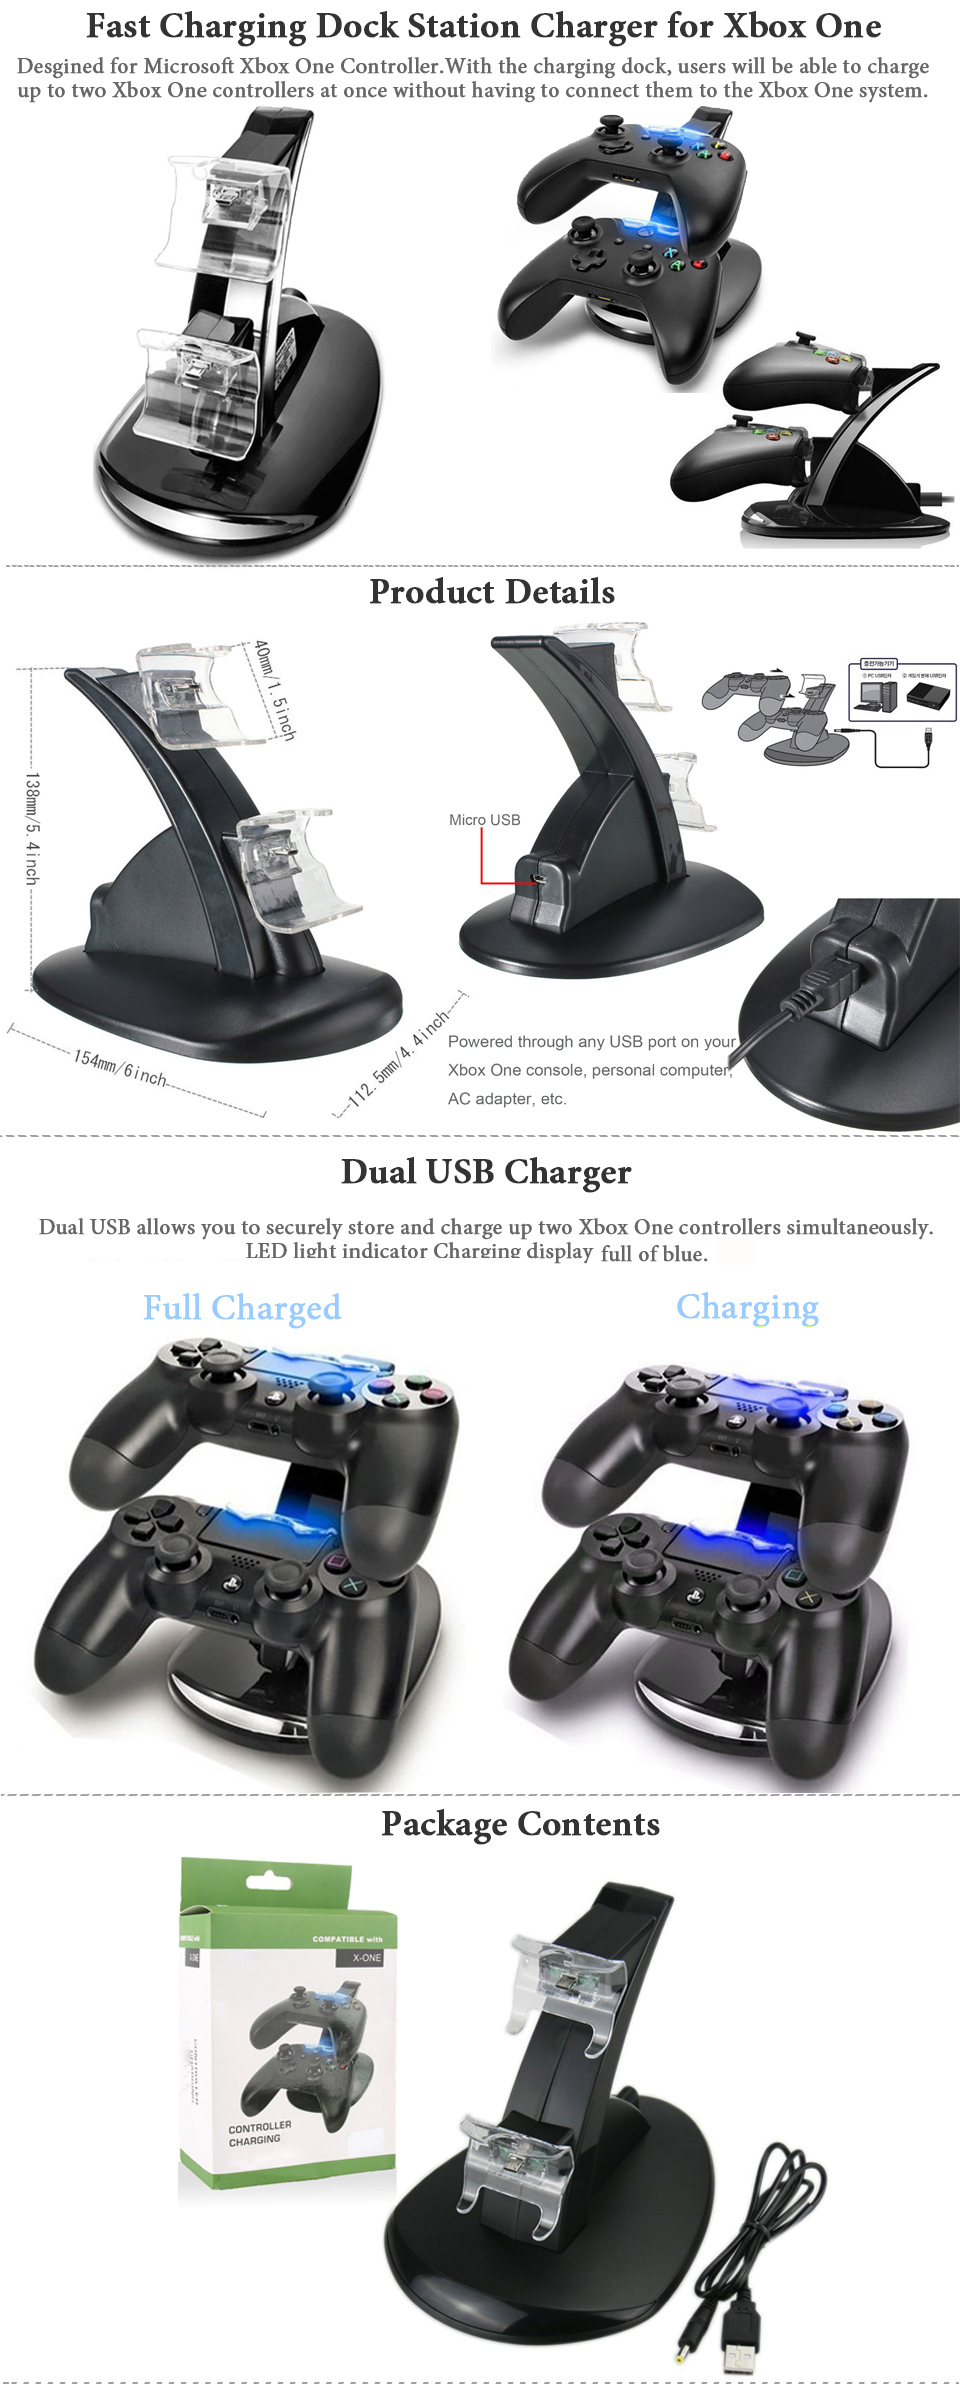 LED Dual Fast Charging Dock Station Charger for Xbox One